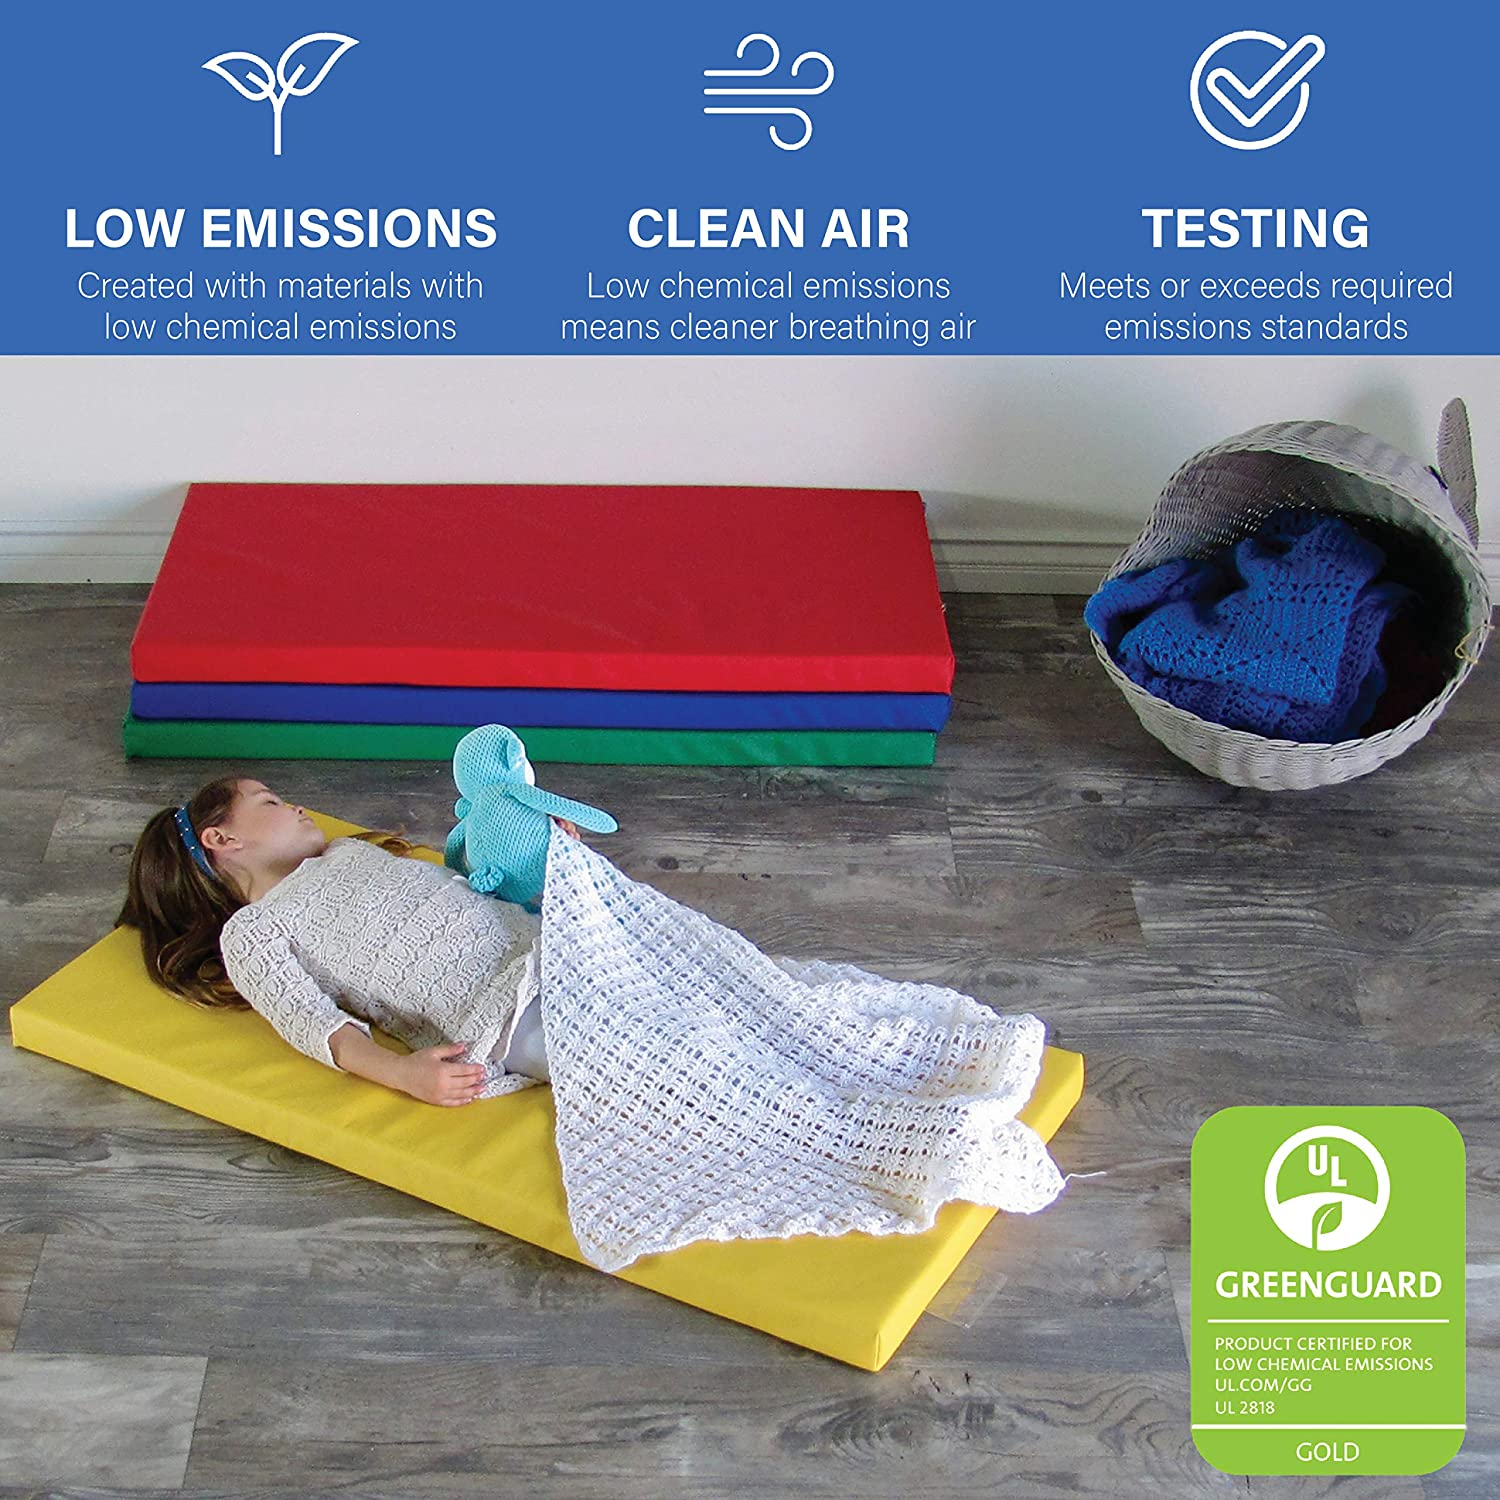 Fdp Softscape Sleepy Time Children S Non Folding Foam Rest Nap Mat With Non Slip Bottom For Home Daycares Classrooms 2 Inch Thick With Name Tag Holder 4 Piece Assorted 12269 As Amazon Com Industrial Scientific